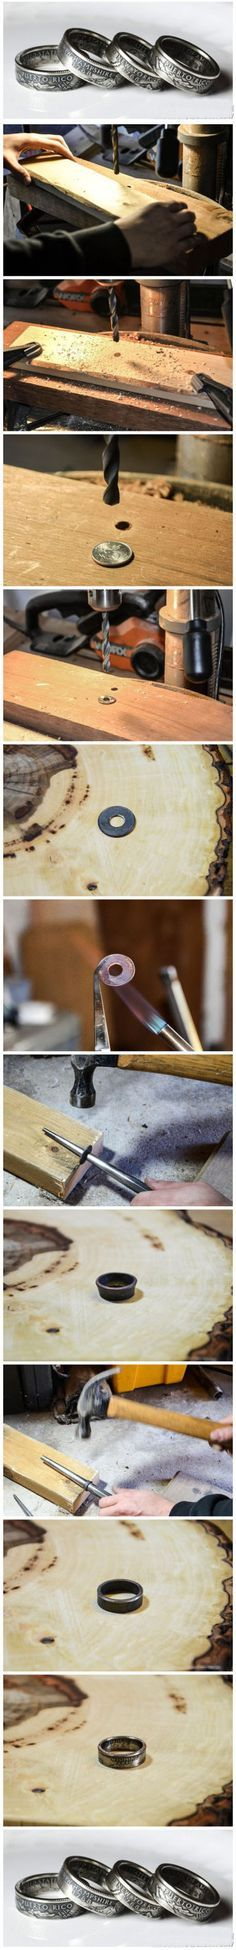 Coin Ring ...how to make a ring out of a circle cut from sheet.... put it through a rolling mill first to texture the metal, cut circles, drill out center, anneal as needed, hammer on a mandrel, switching the way the ring faces on mandrel.... pickle to remove firescale, liver of sulphur, polish.